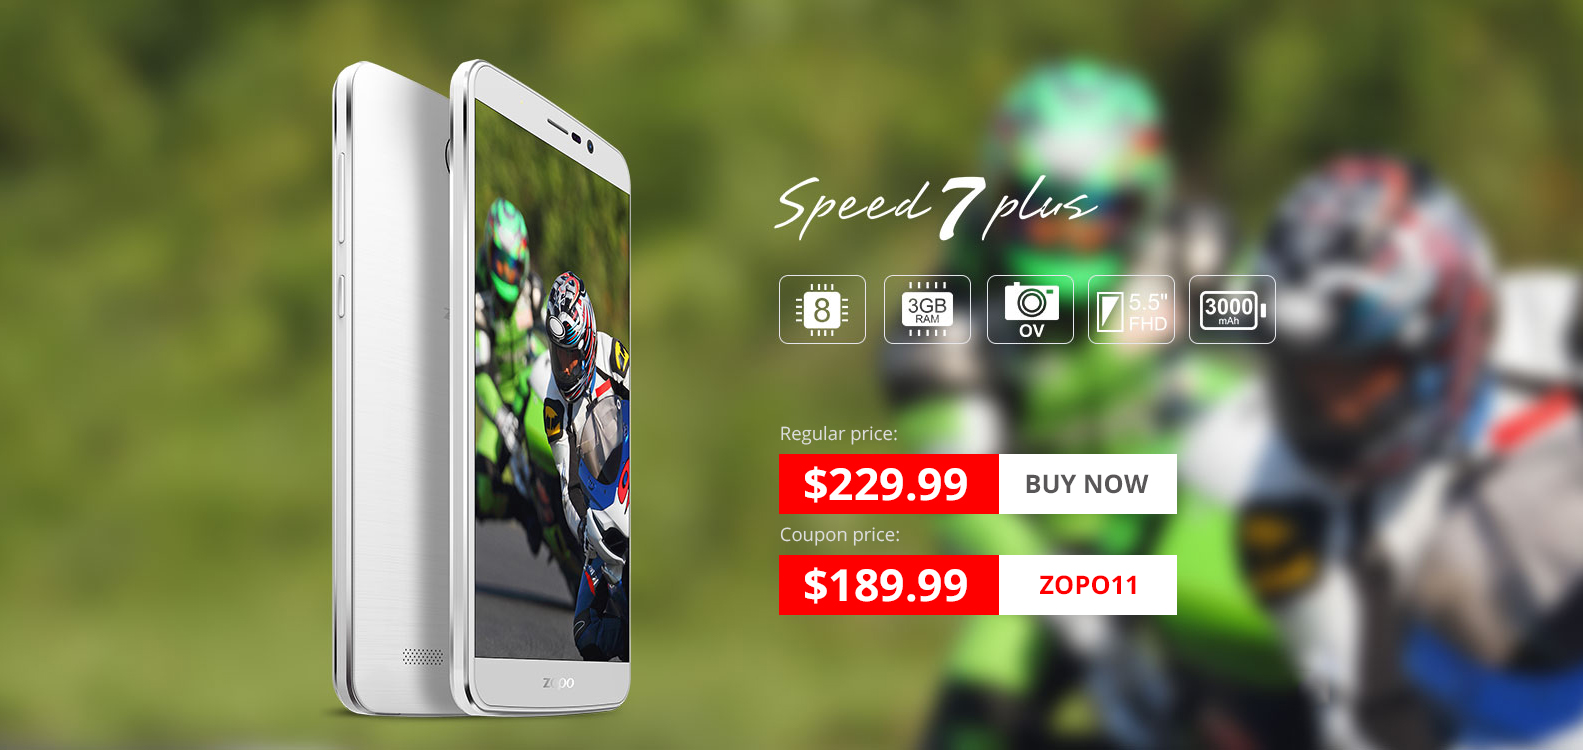 Zopo Speed 7 and 7 Plus Promotion from Everbuying 2